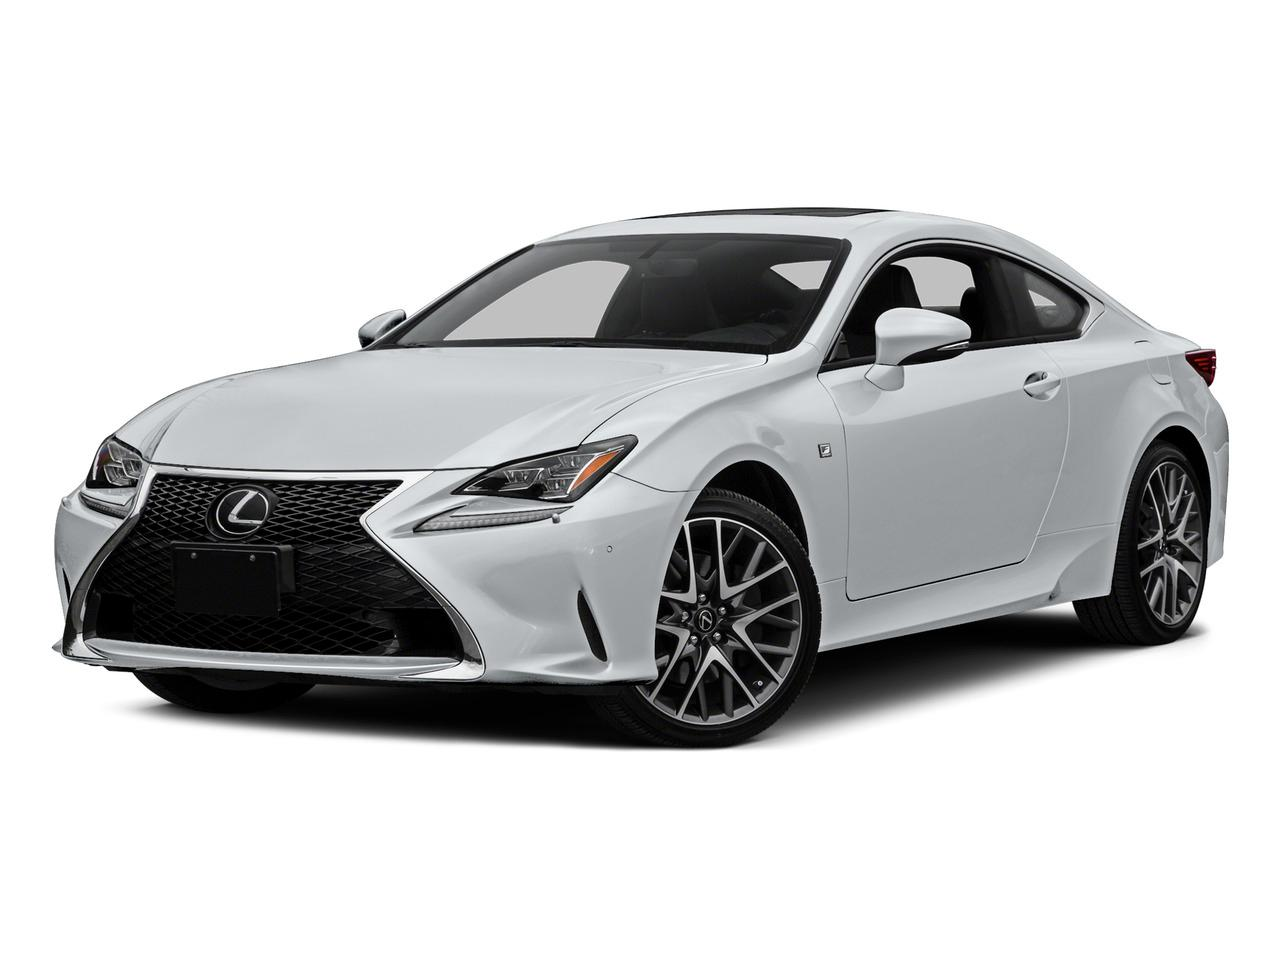 2015 Lexus RC 350 Vehicle Photo in Fort Worth, TX 76116